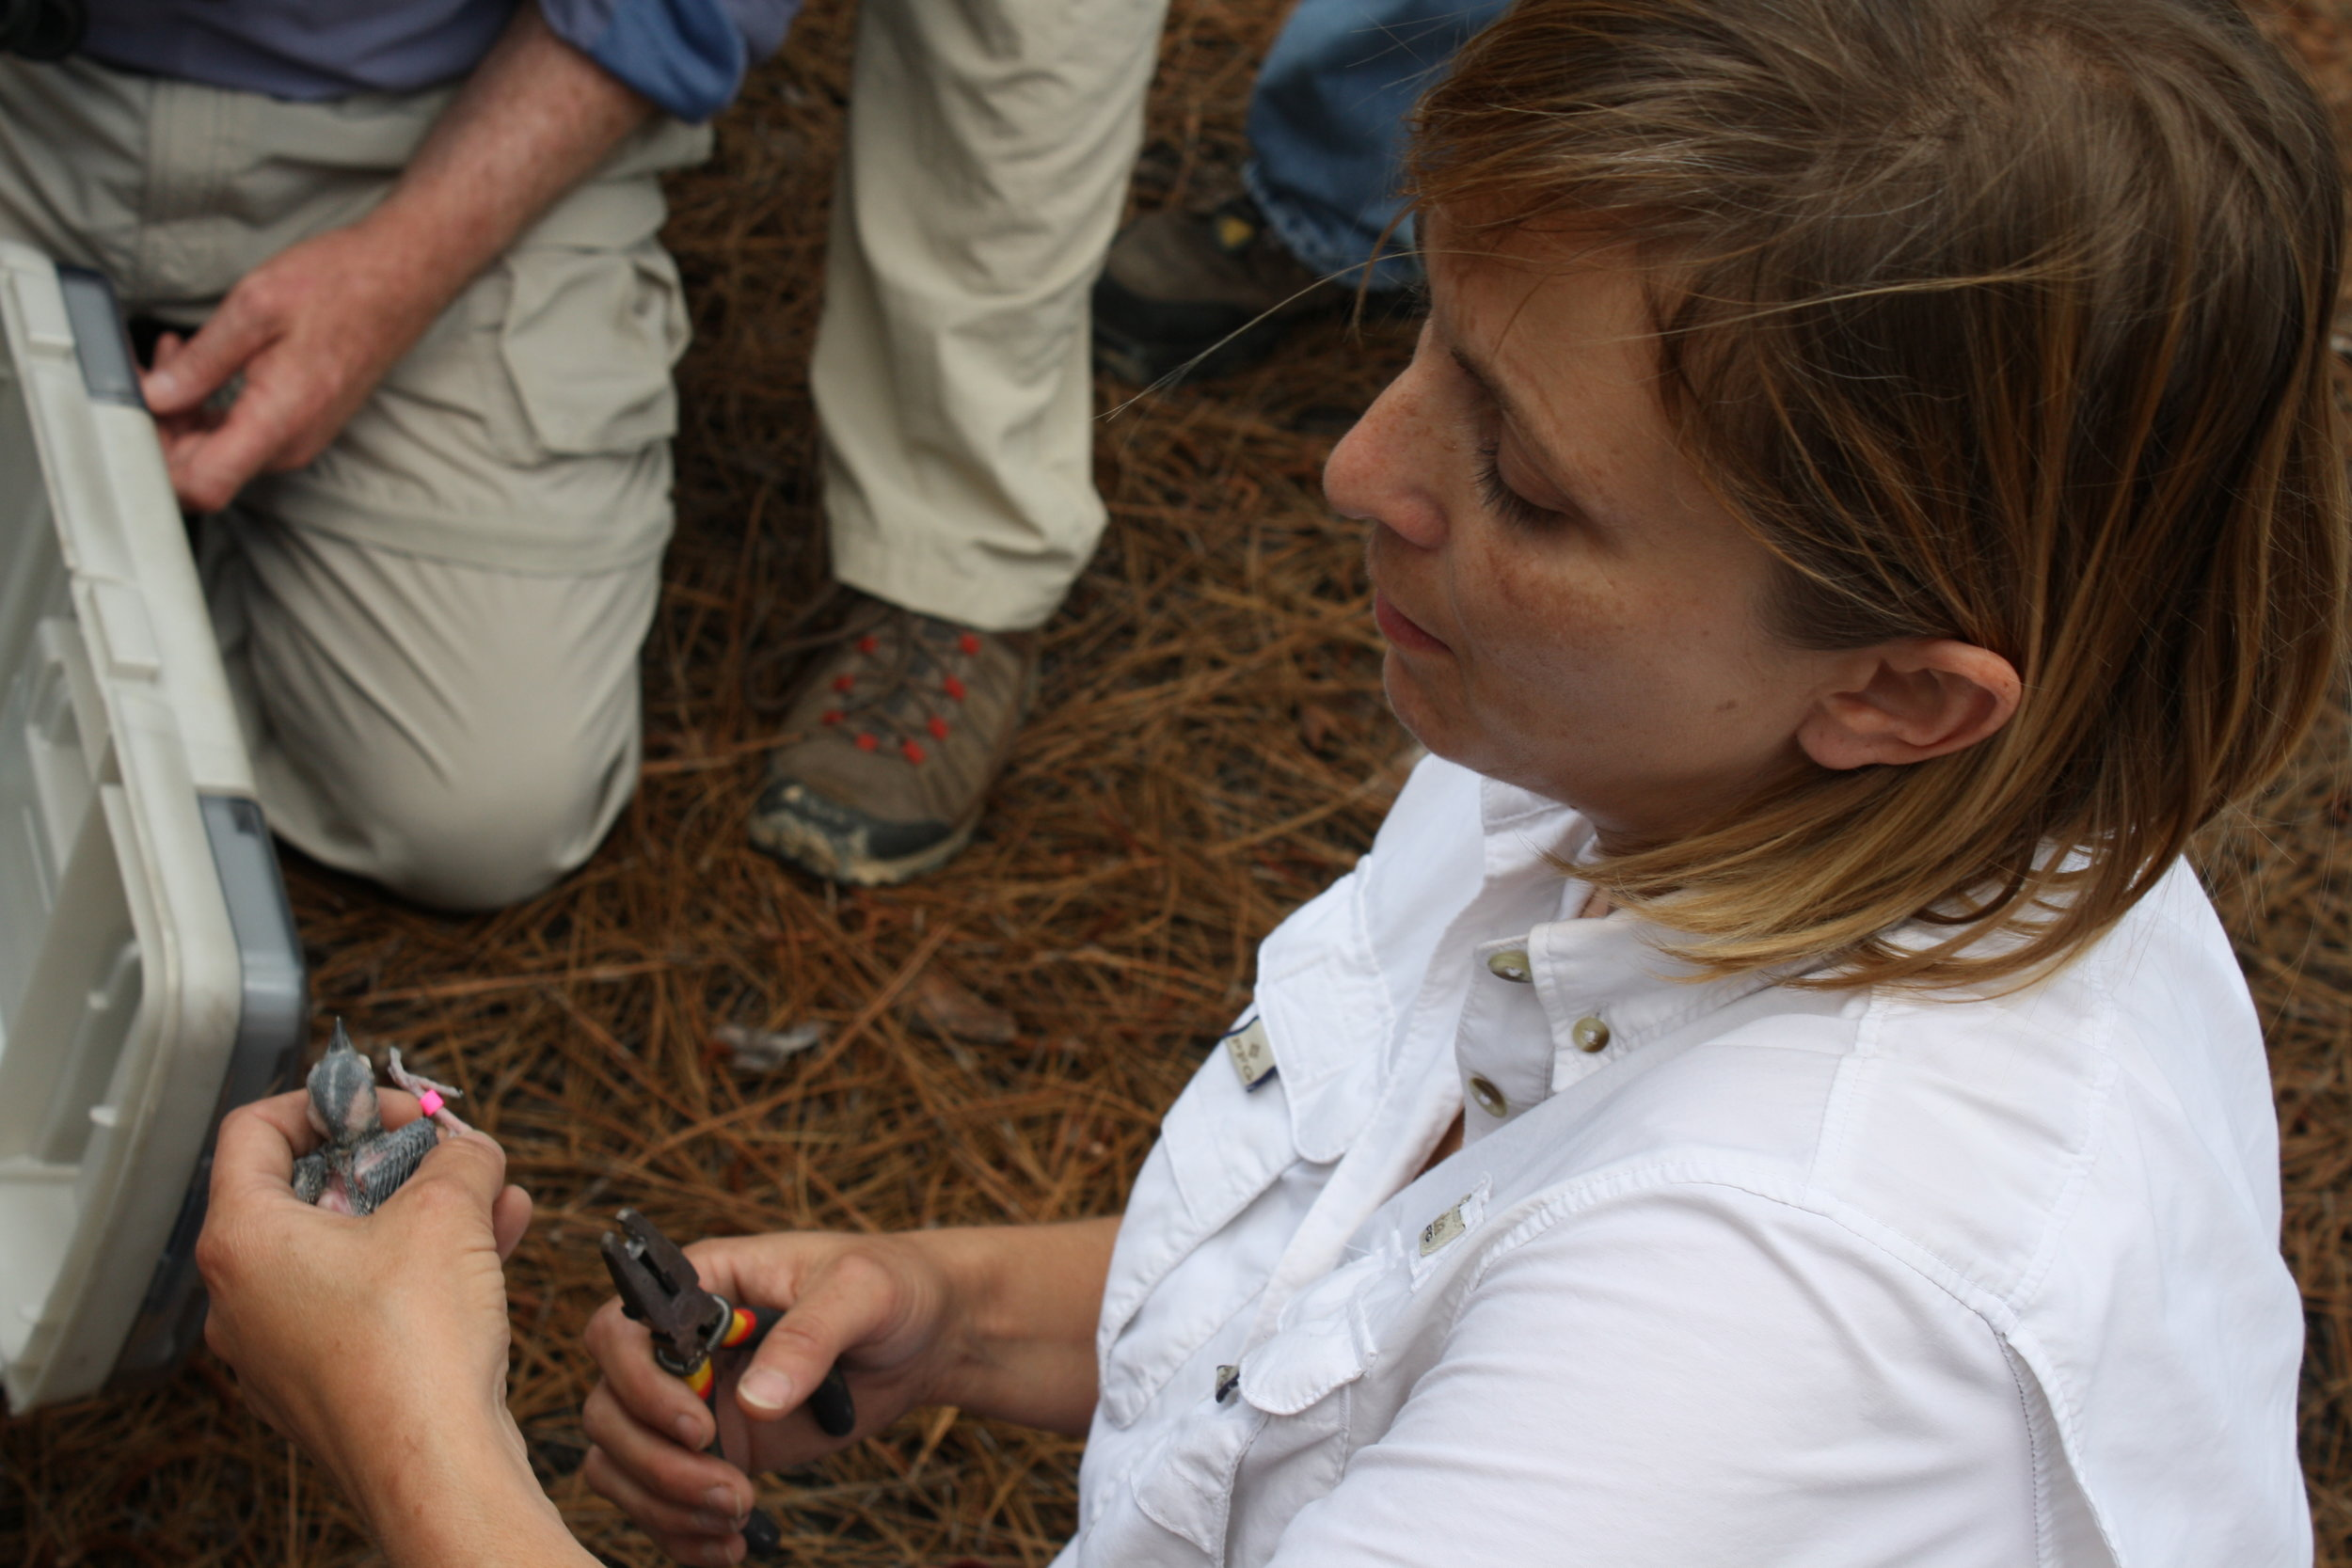 Nicole teaching a Midlands Master Naturalist class about Red-cockaded woodpeckers, and demonstrating the banding procedures.